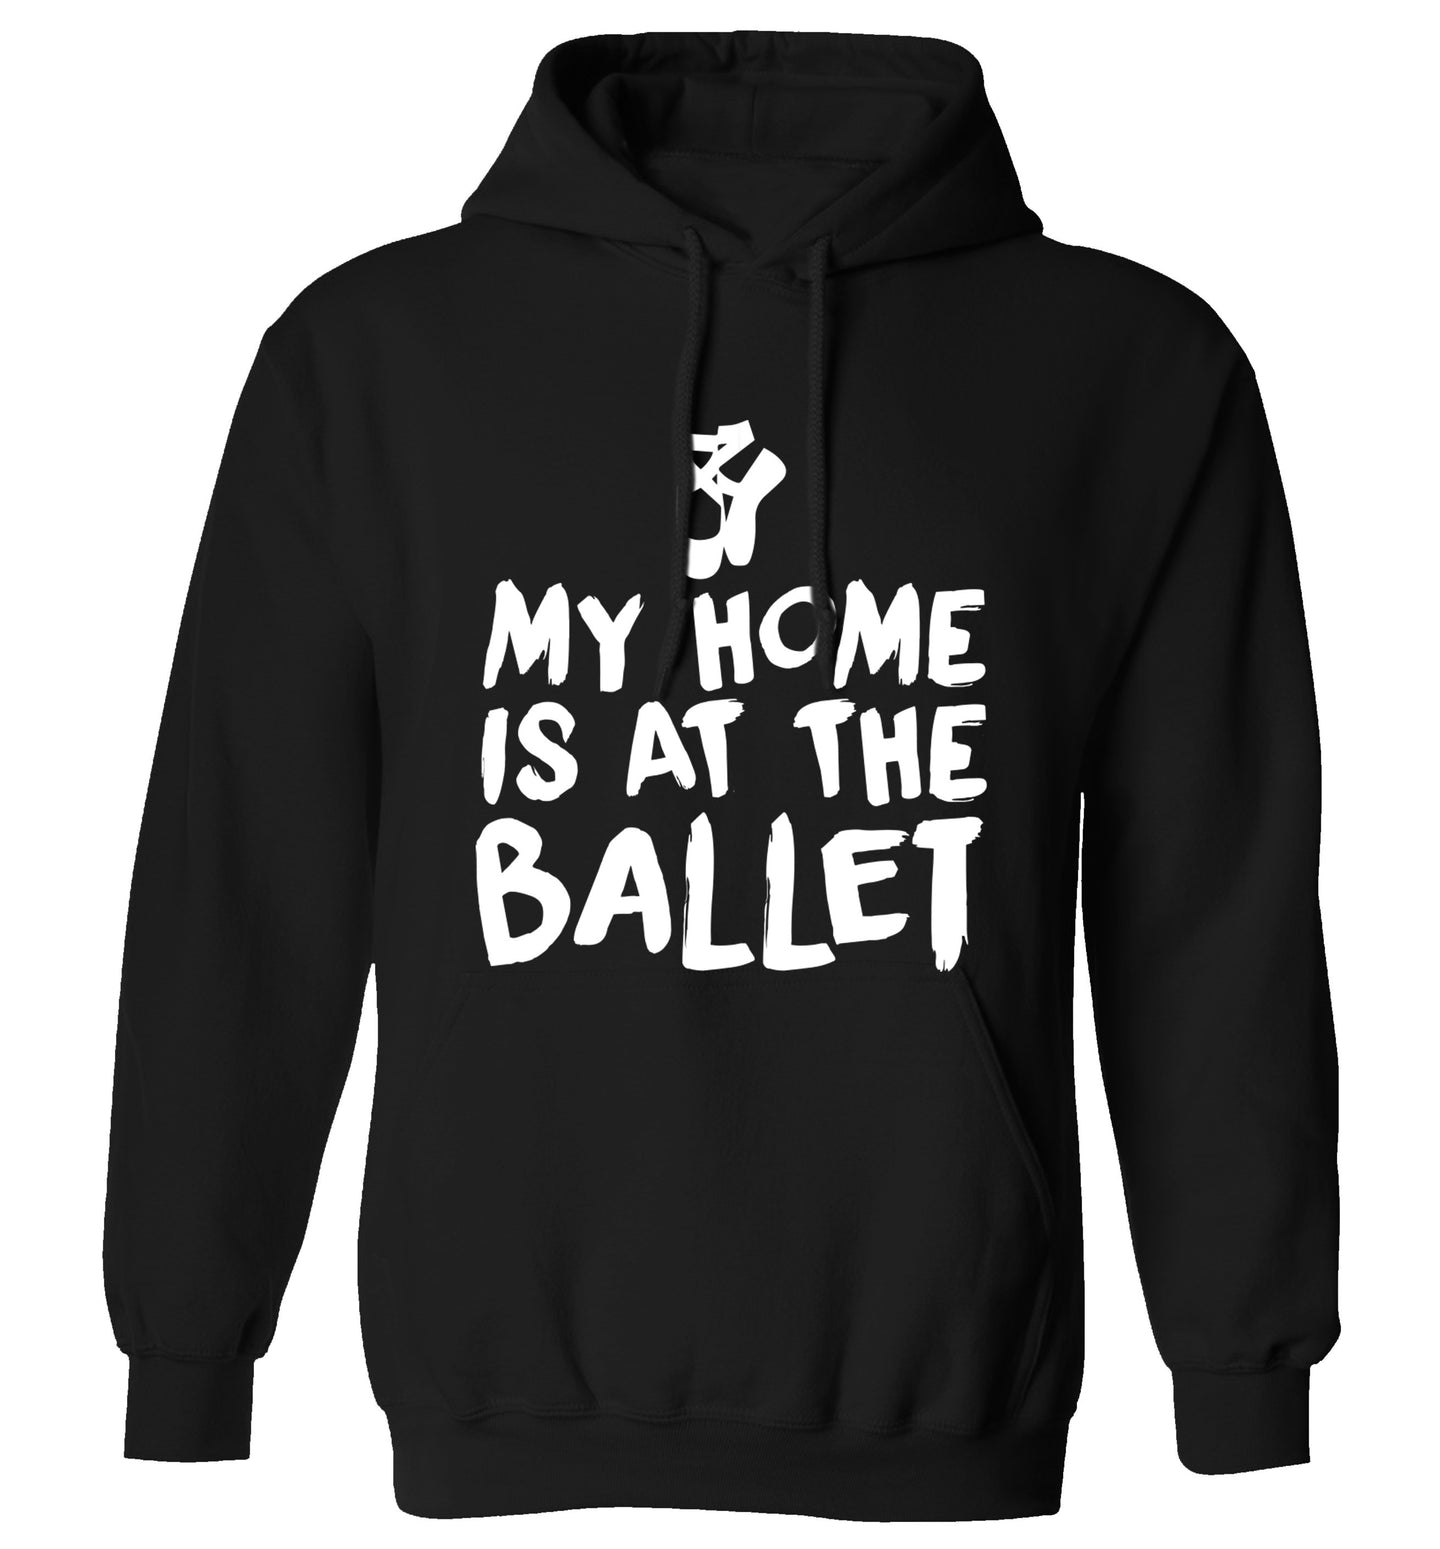 My home is at the dance studio adults unisex black hoodie 2XL